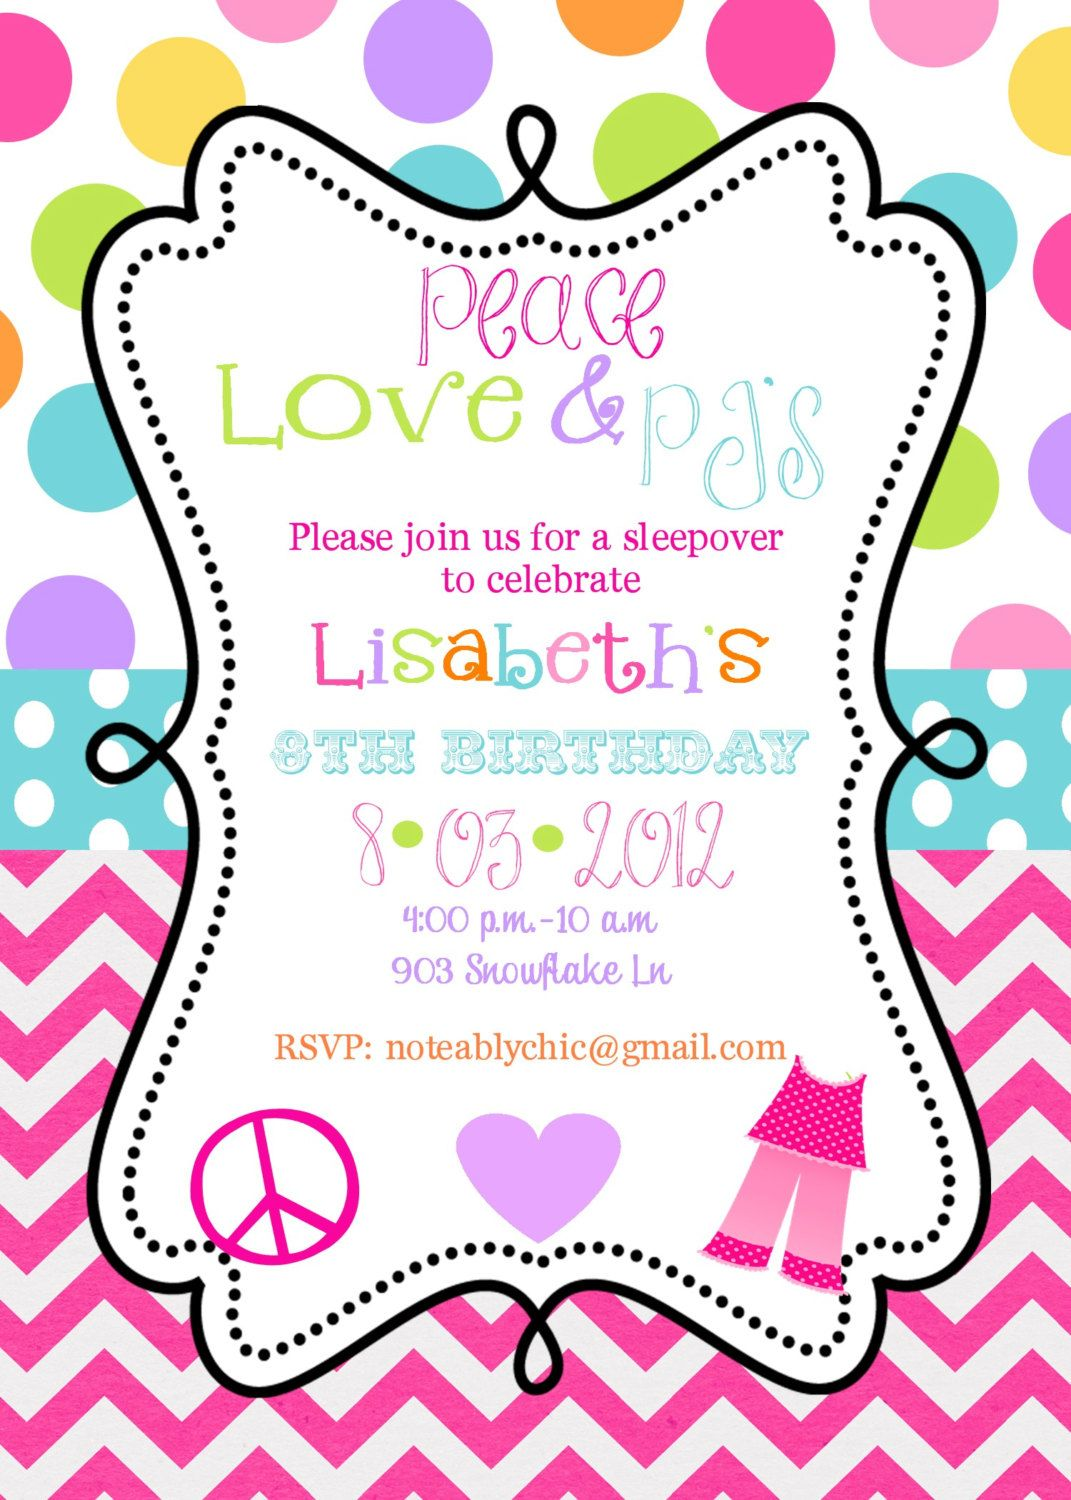 12 Peace Love Pjs Pajama Party Sleepover Slumber Party Birthday